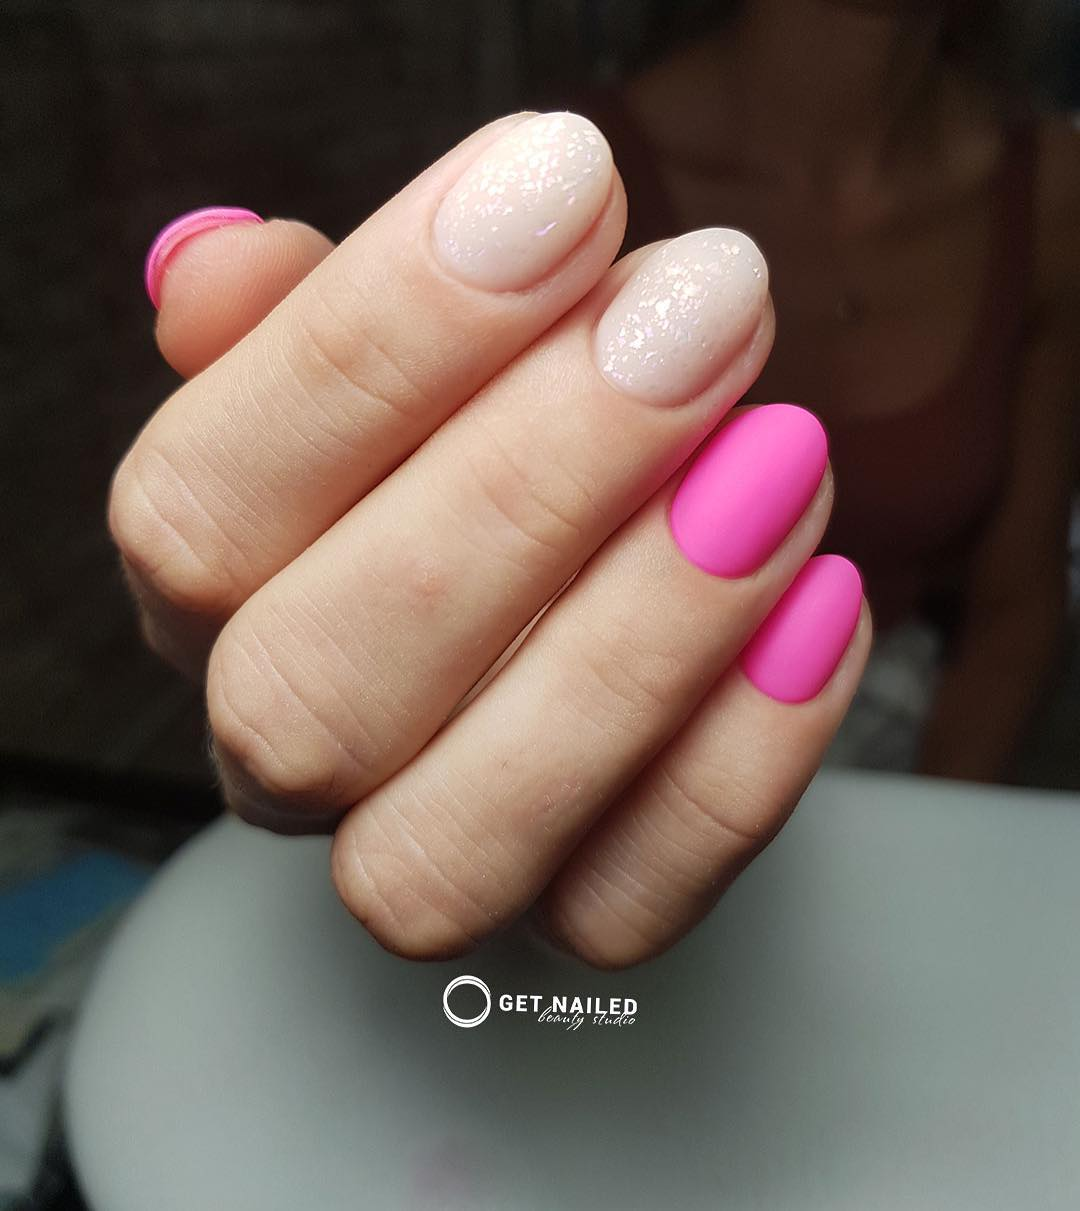 Pink dreams are made of this Nails done by MargaritaYou can book your appointment on getnailed.co, through DM, WhatsApp +34 680 576 151 or simply by leaving a comment ..luxiogel